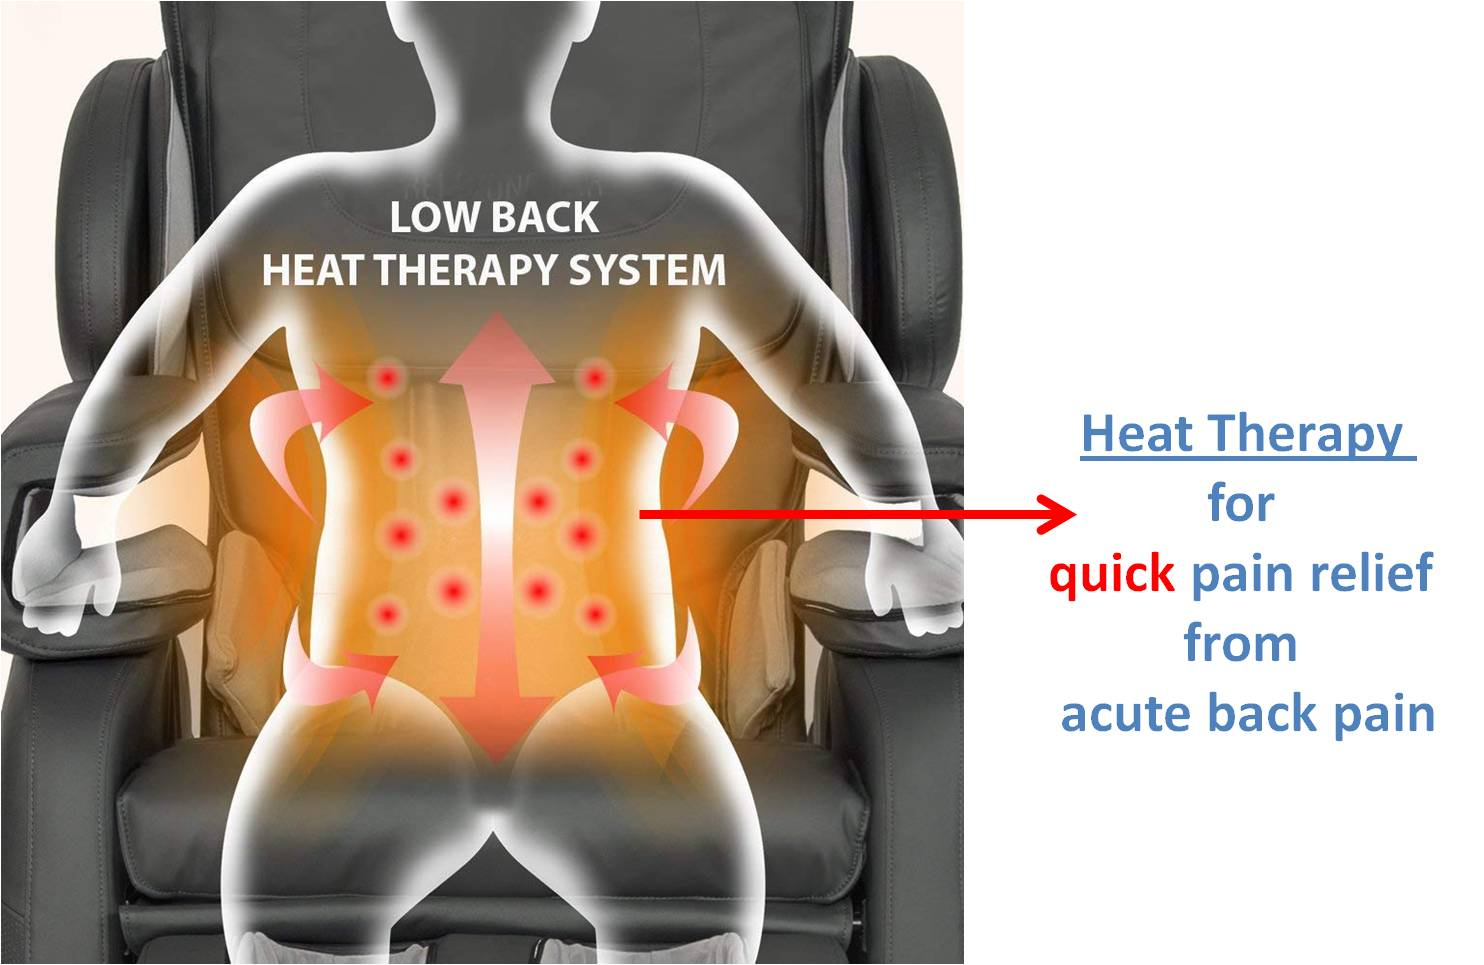 Relaxonchair MK-II Massage Chair Reviews - Heat Therapy for Quick Pain Relief from Acute Back Pain